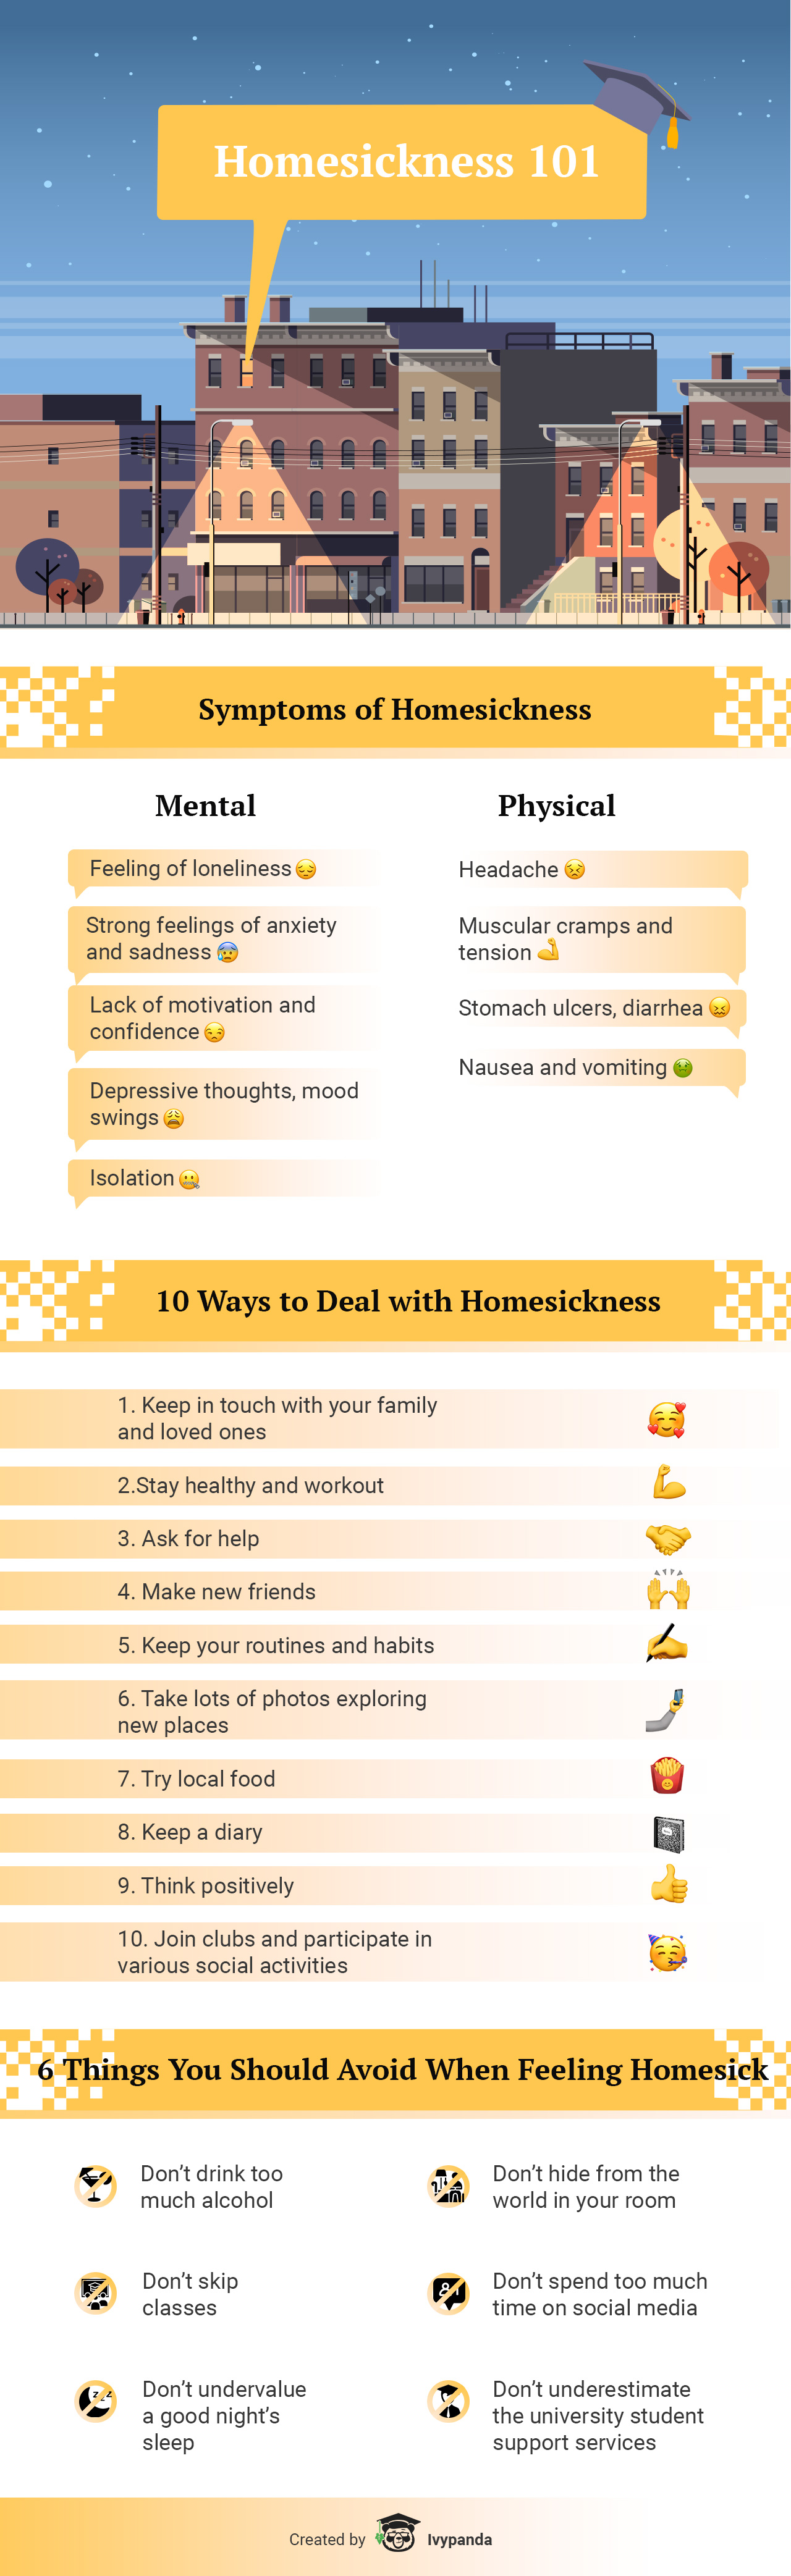 How to Avoid Homesickness at College - Infographic